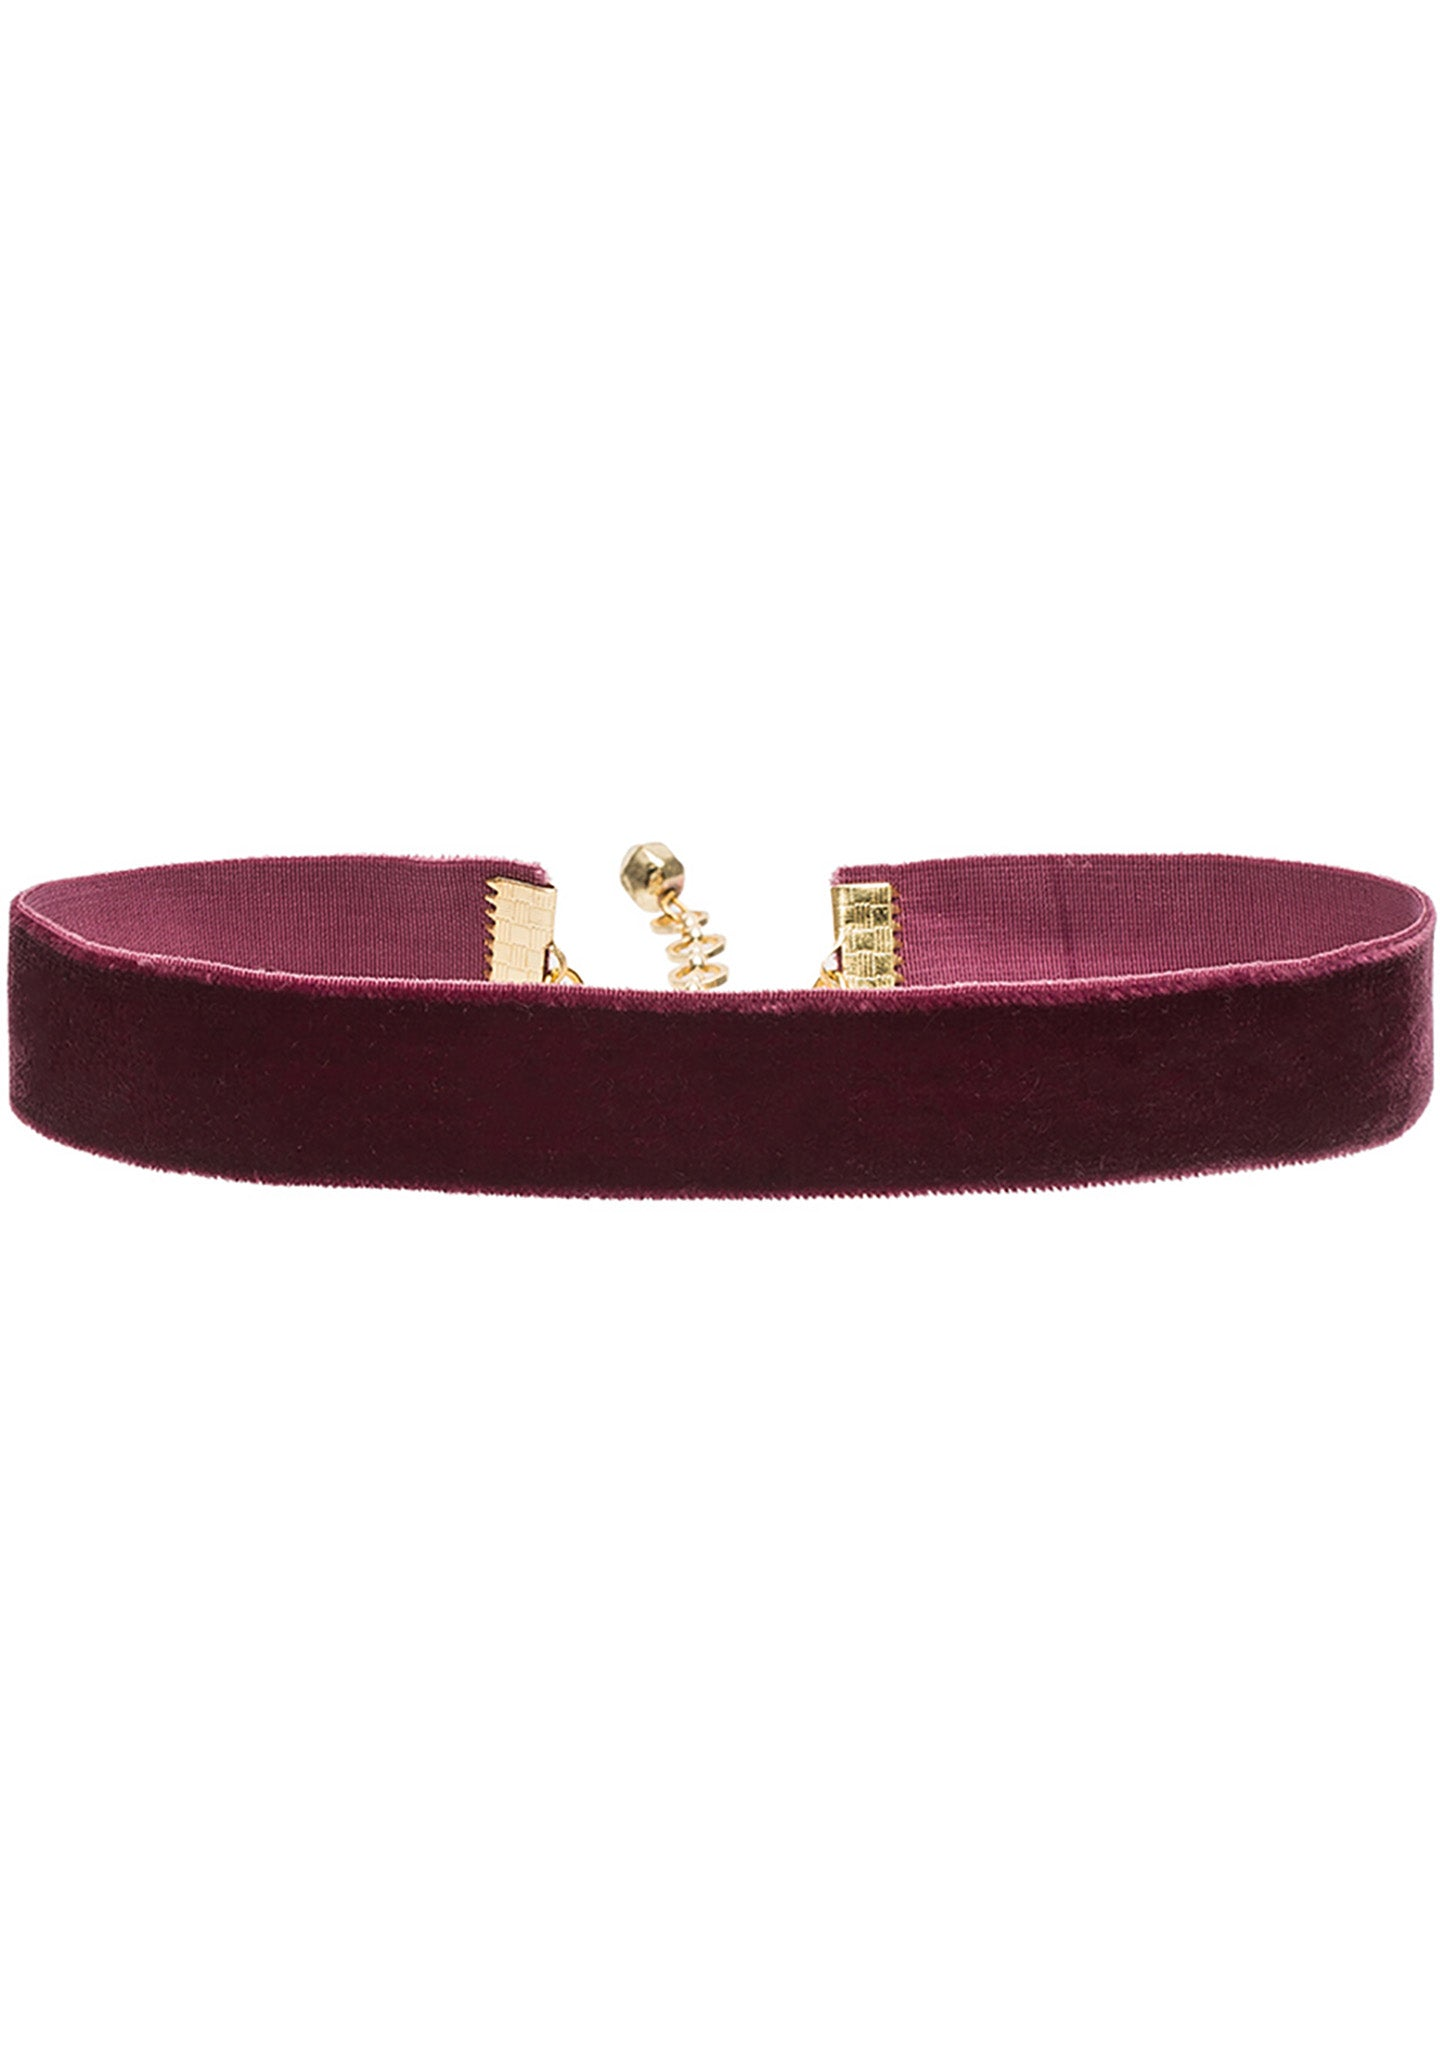 "Vanessa Mooney 3/4"" Bordeaux Velvet Choker"